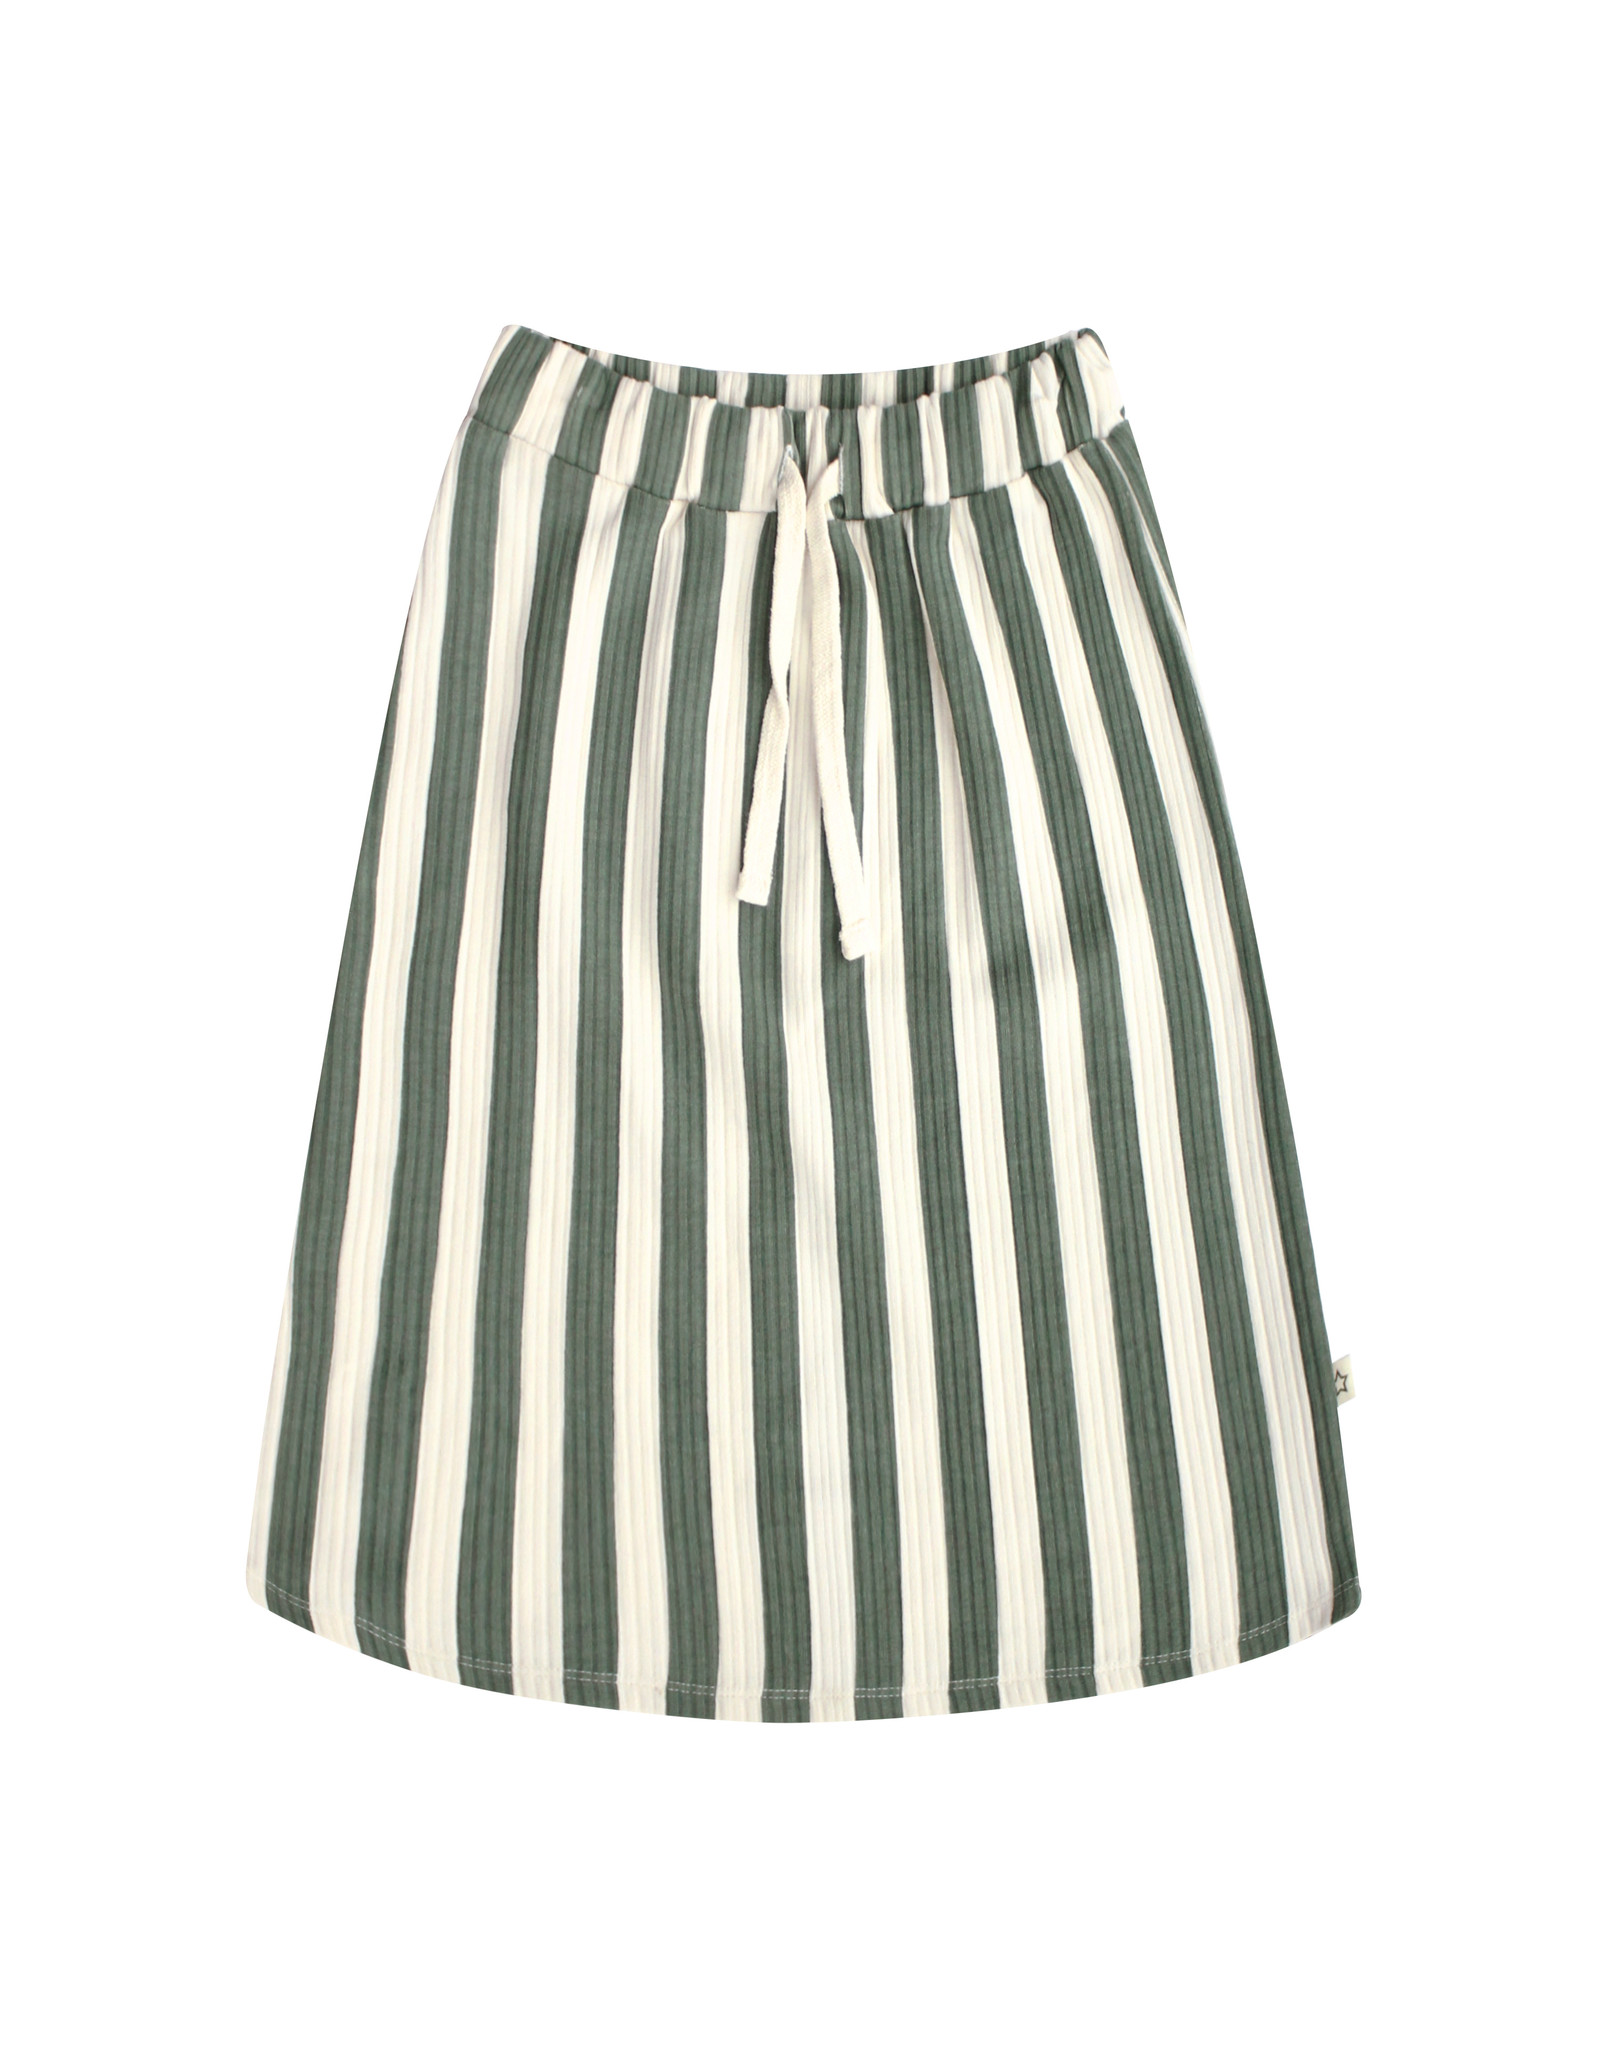 Your Wishes Bold Stripes | Long Skirt kids